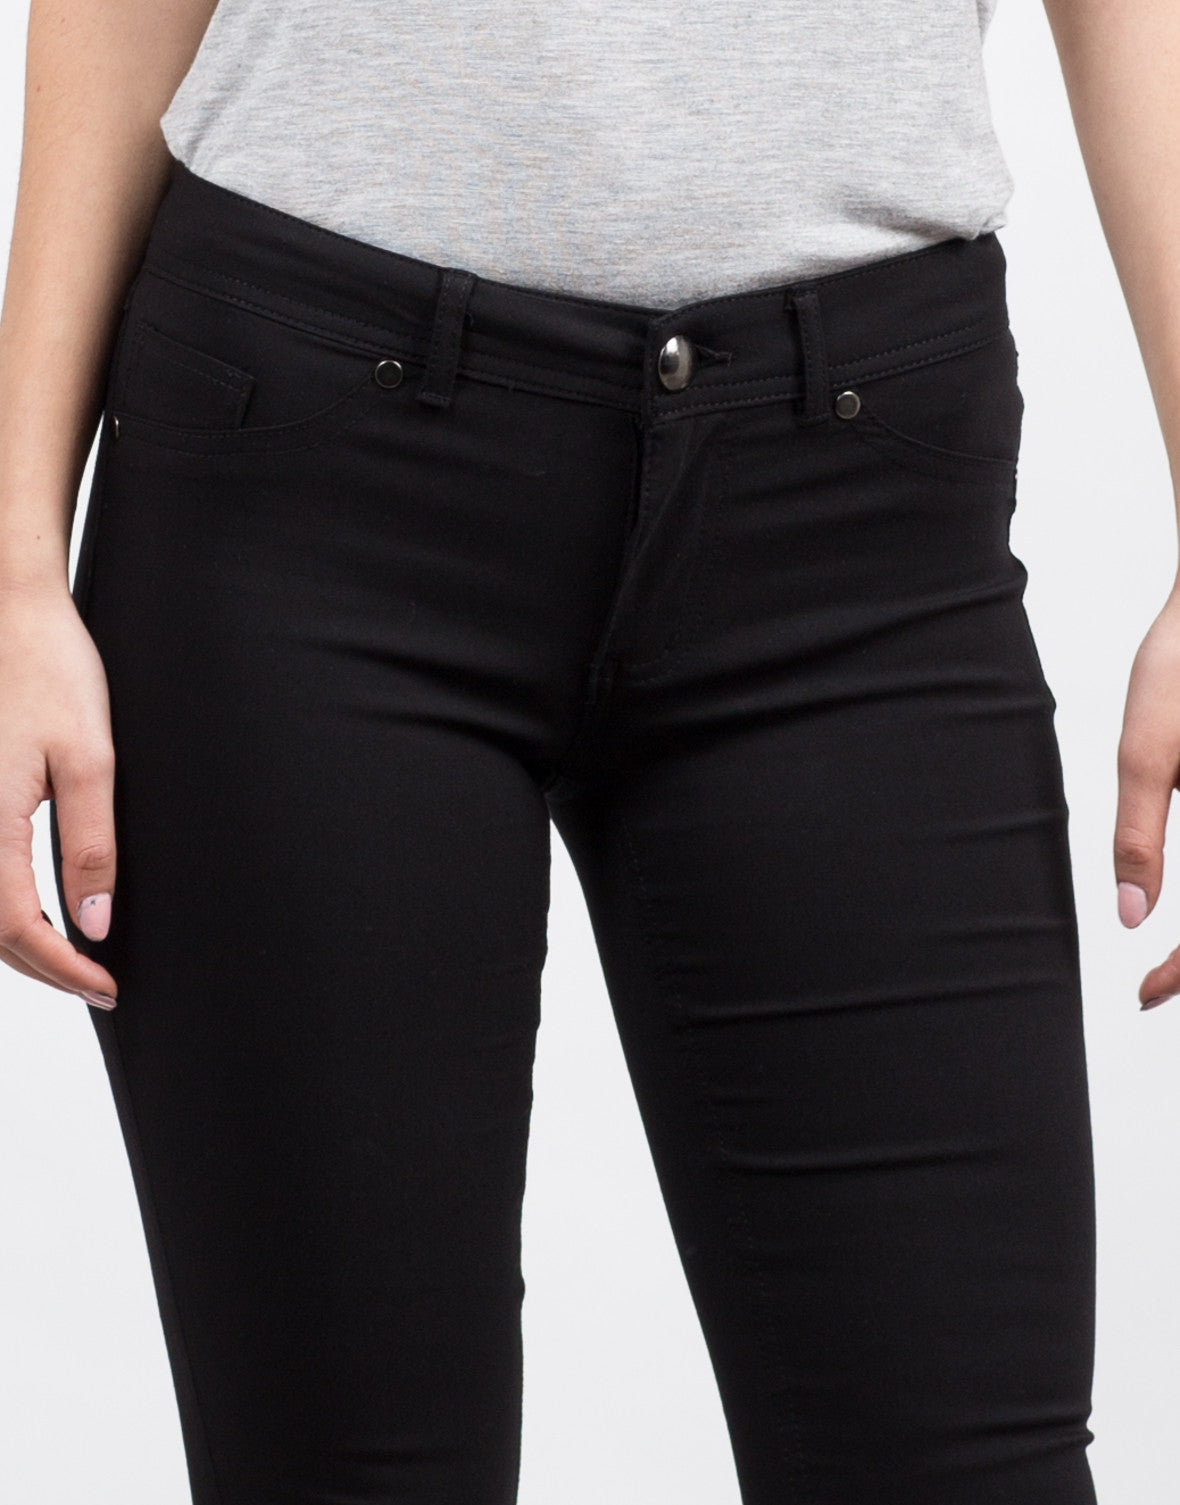 Detail of Basic Stretchy Skinny Pants